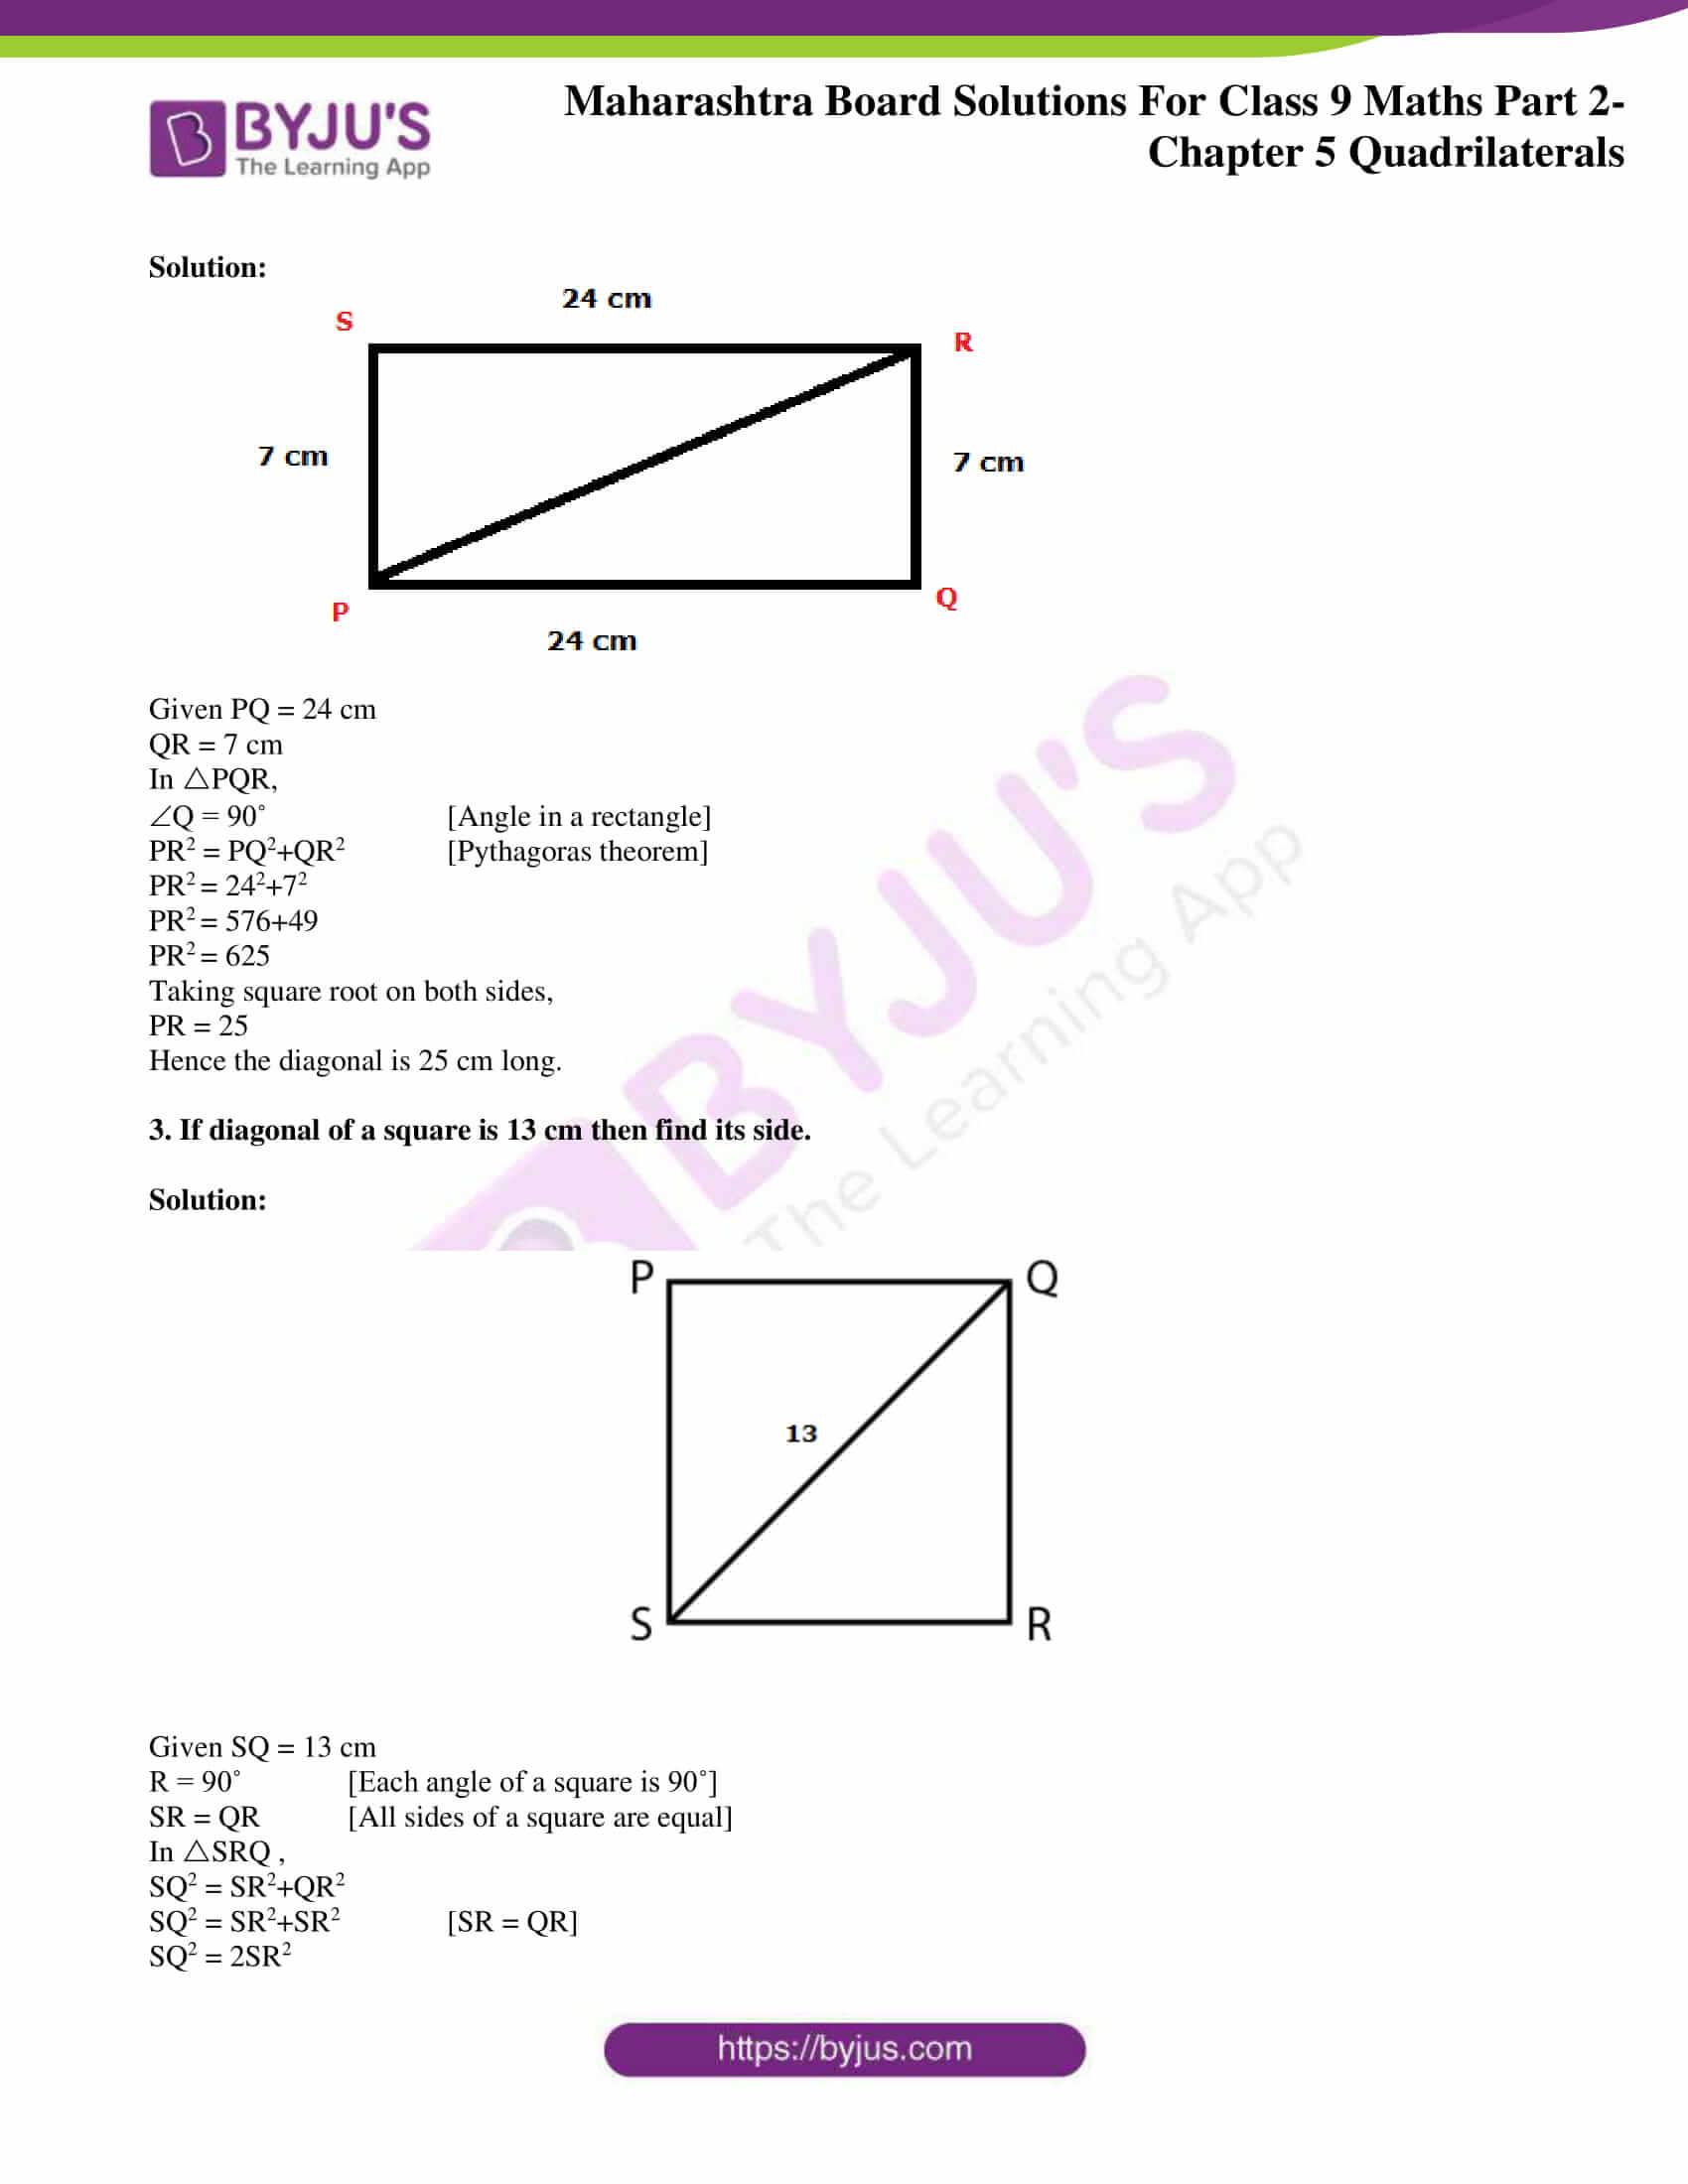 msbshse solutions for class 9 maths part 2 chapter 5 21